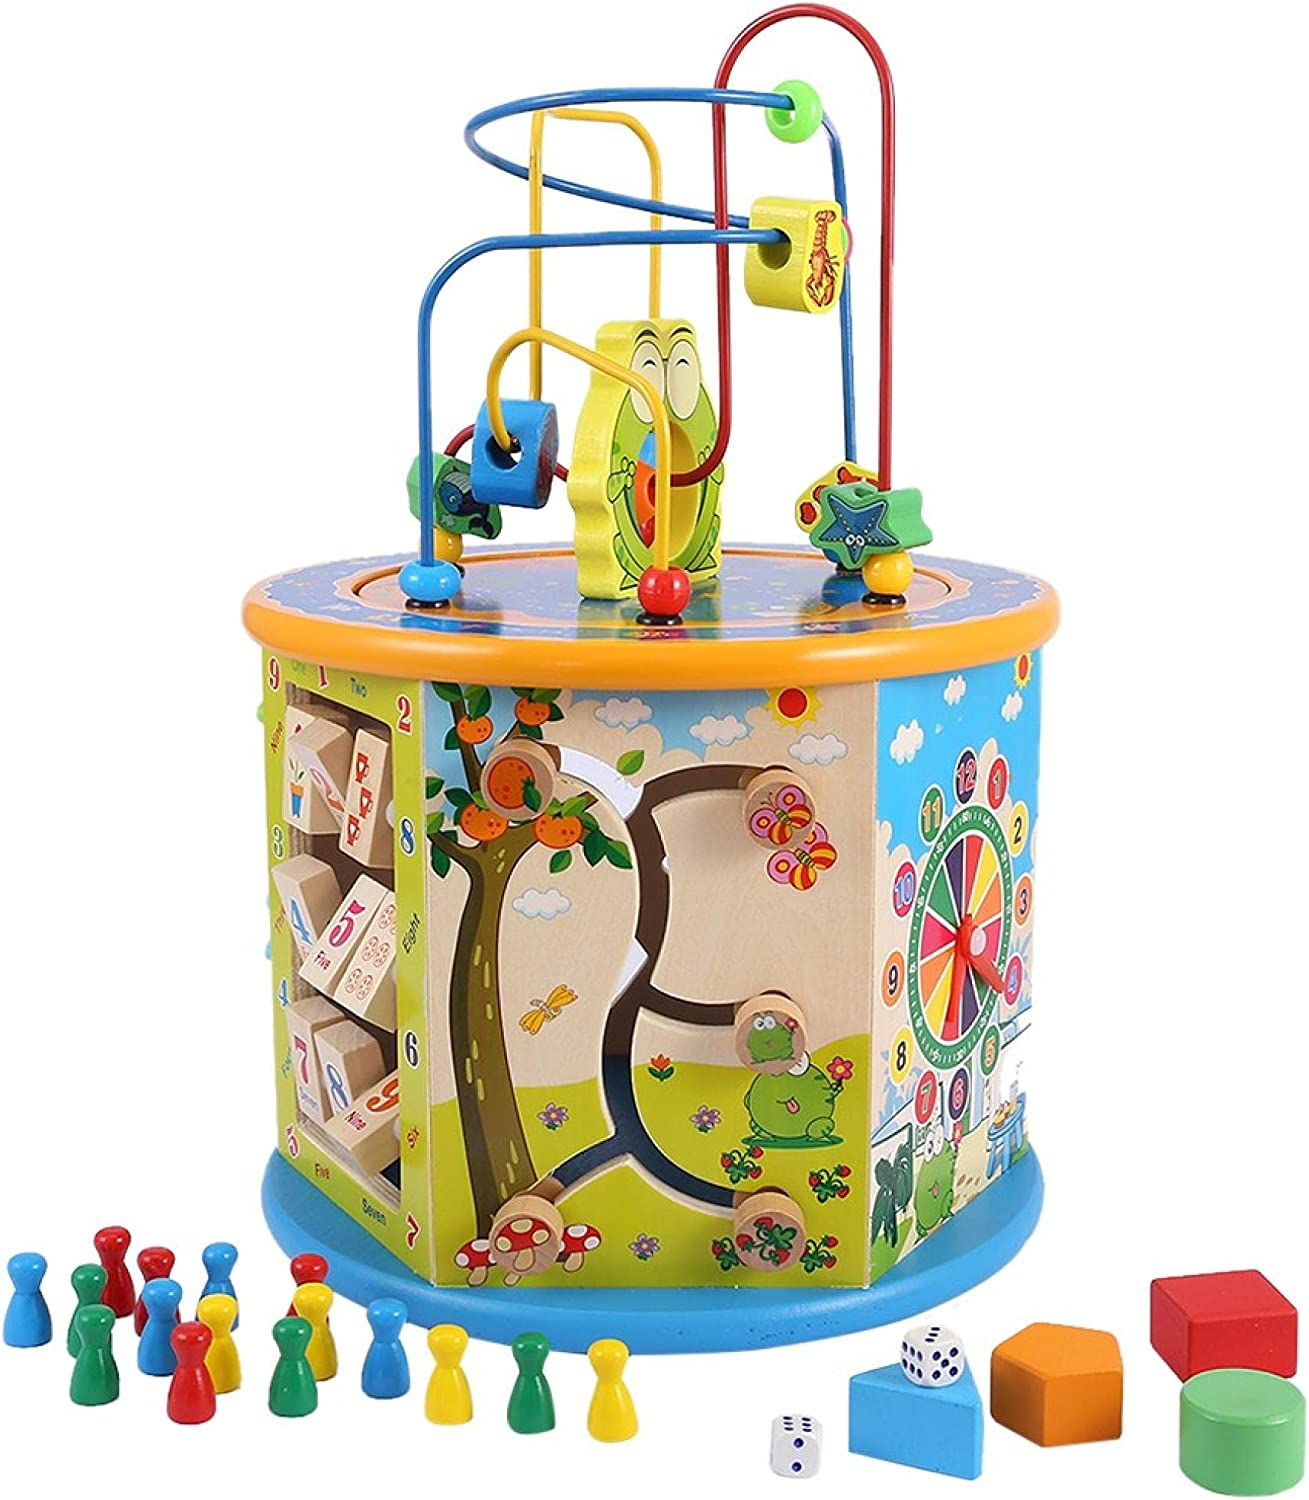 Tpouo Activity Box with Beaded C Educational Maze Finally resale start Multi-Function 35% OFF